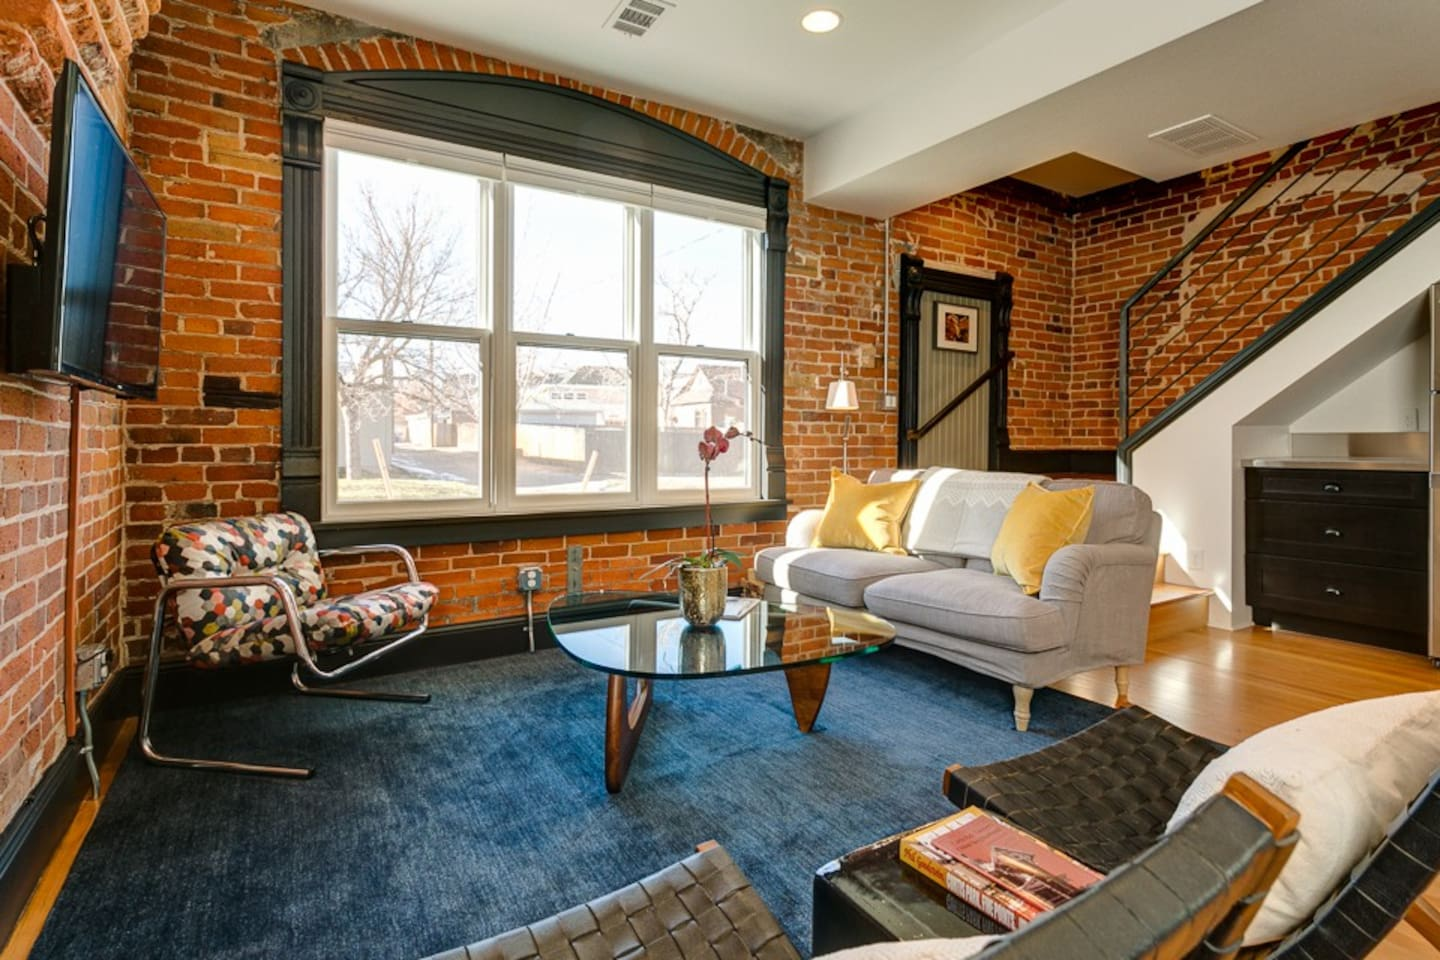 """A cool mixture of modern and historic...You feel like a million bucks...In immaculate condition...Had a lot of character...The four of us all said it was the best Airbnb we've used...Such a warm and relaxing vibe from the second you walk in the door...We felt like we got a true feeling of Denver through a local's perspective."""